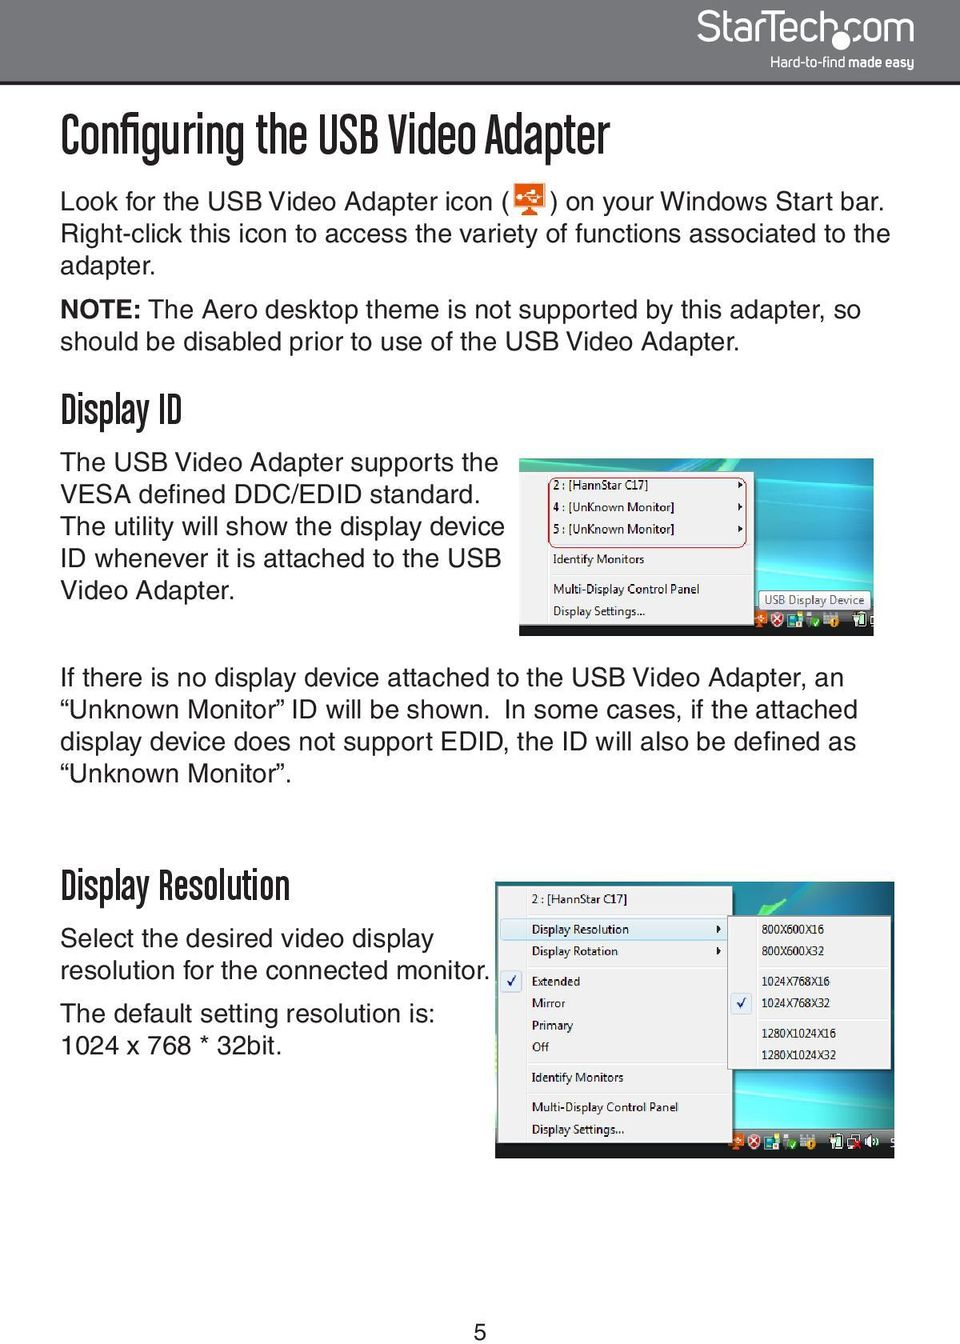 Display ID The USB Video Adapter supports the VESA defined DDC/EDID standard. The utility will show the display device ID whenever it is attached to the USB Video Adapter.